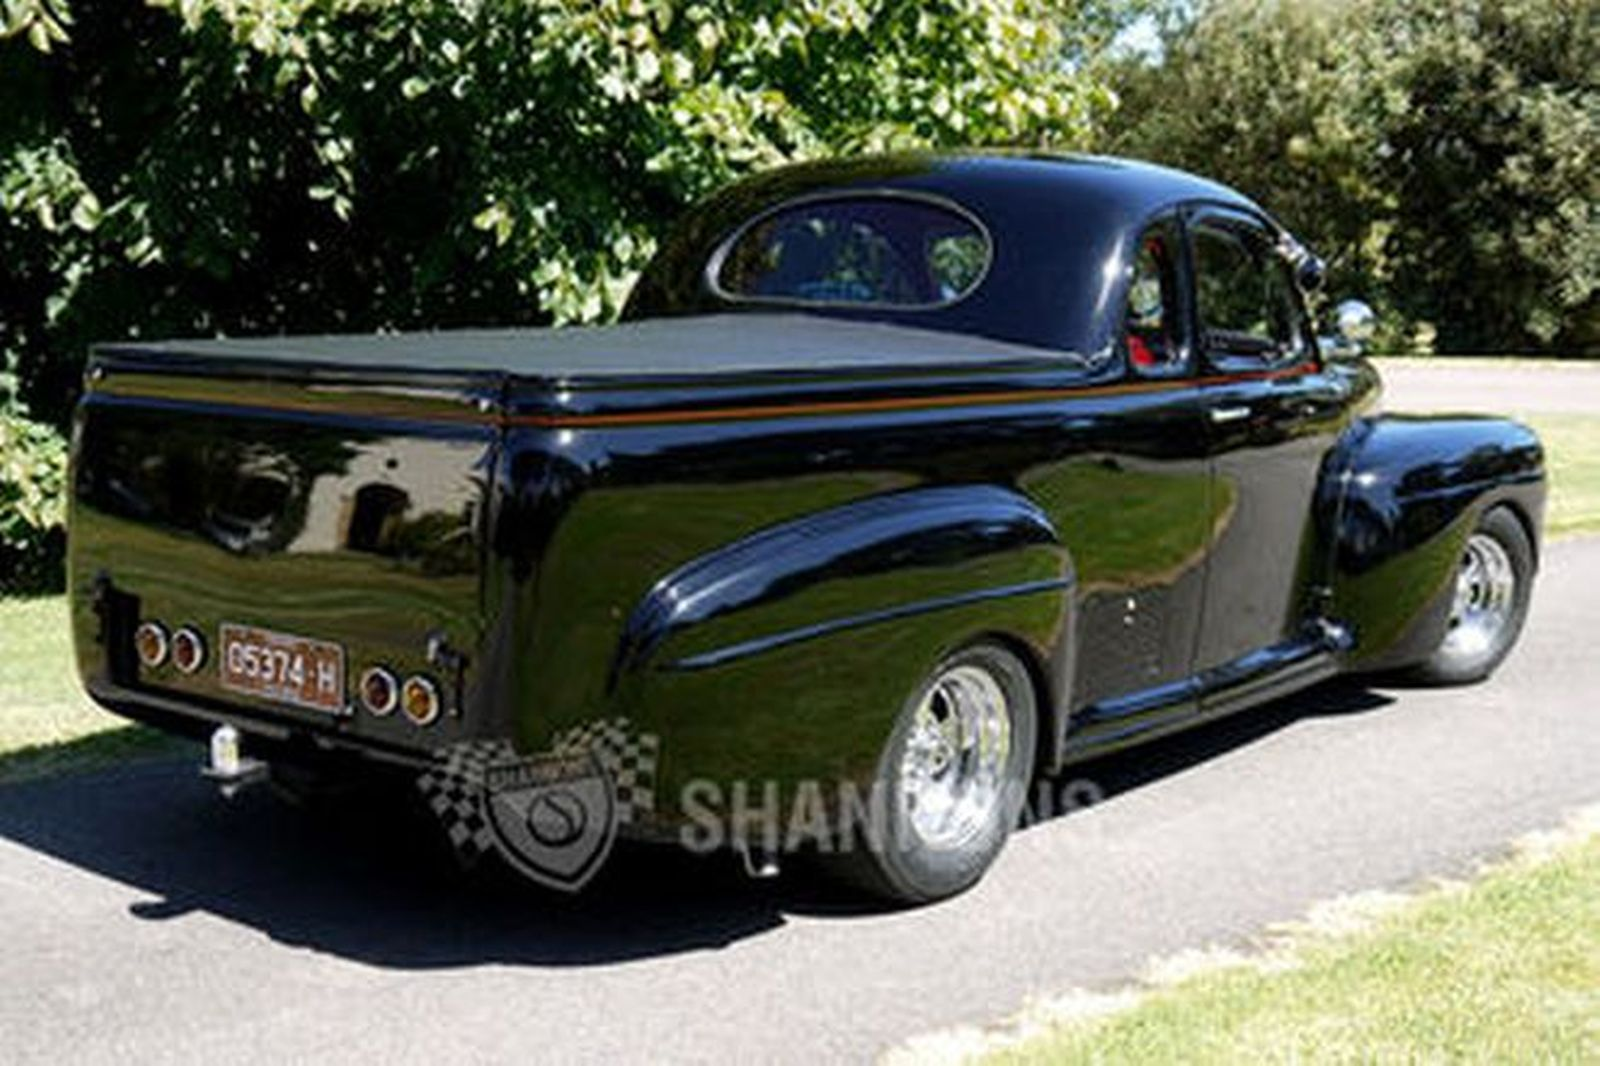 Ford Hot Rod Coupe Utility Rhd Auctions Lot 36 Shannons 1948 Pickup